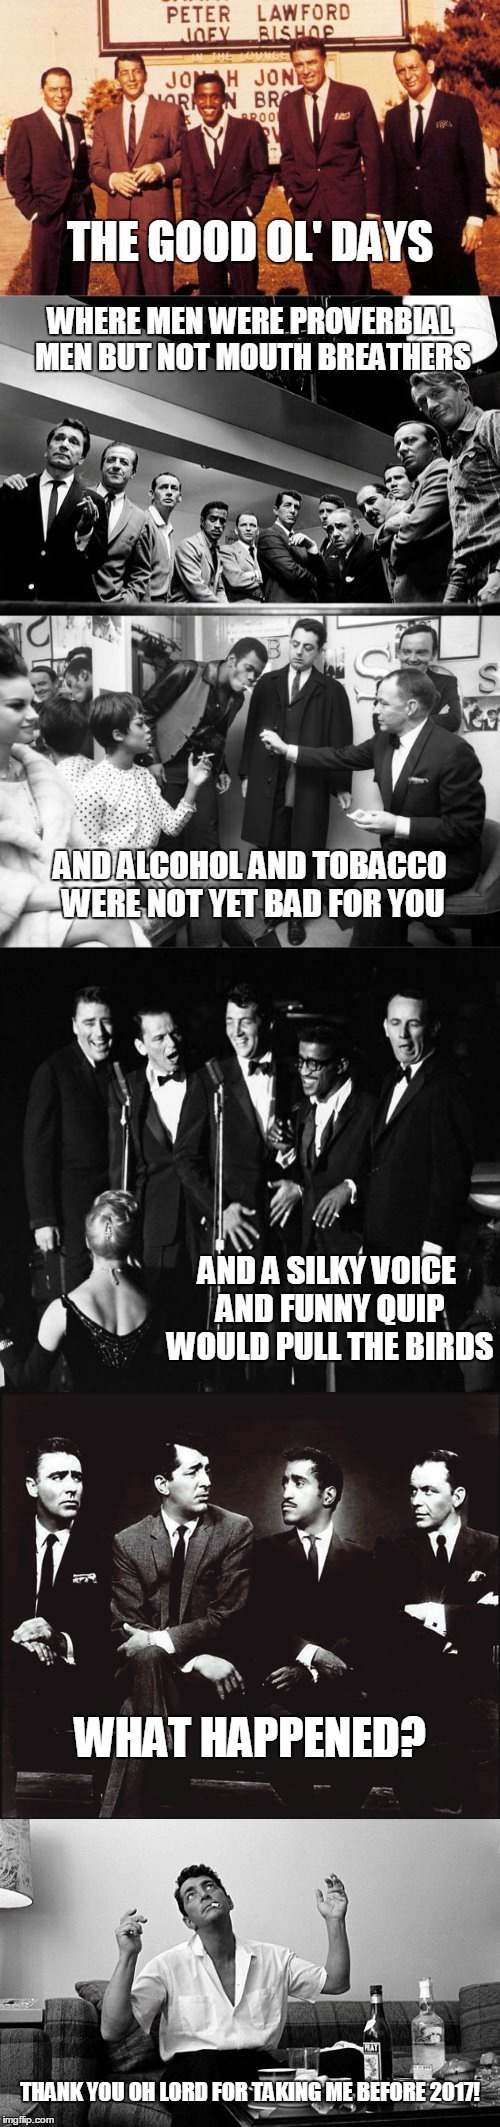 a bit before MY time though | THANK YOU OH LORD FOR TAKING ME BEFORE 2017! WHAT HAPPENED? | image tagged in memes,rat pack week,rat pack,dean martin,frank sinatra,good old days | made w/ Imgflip meme maker